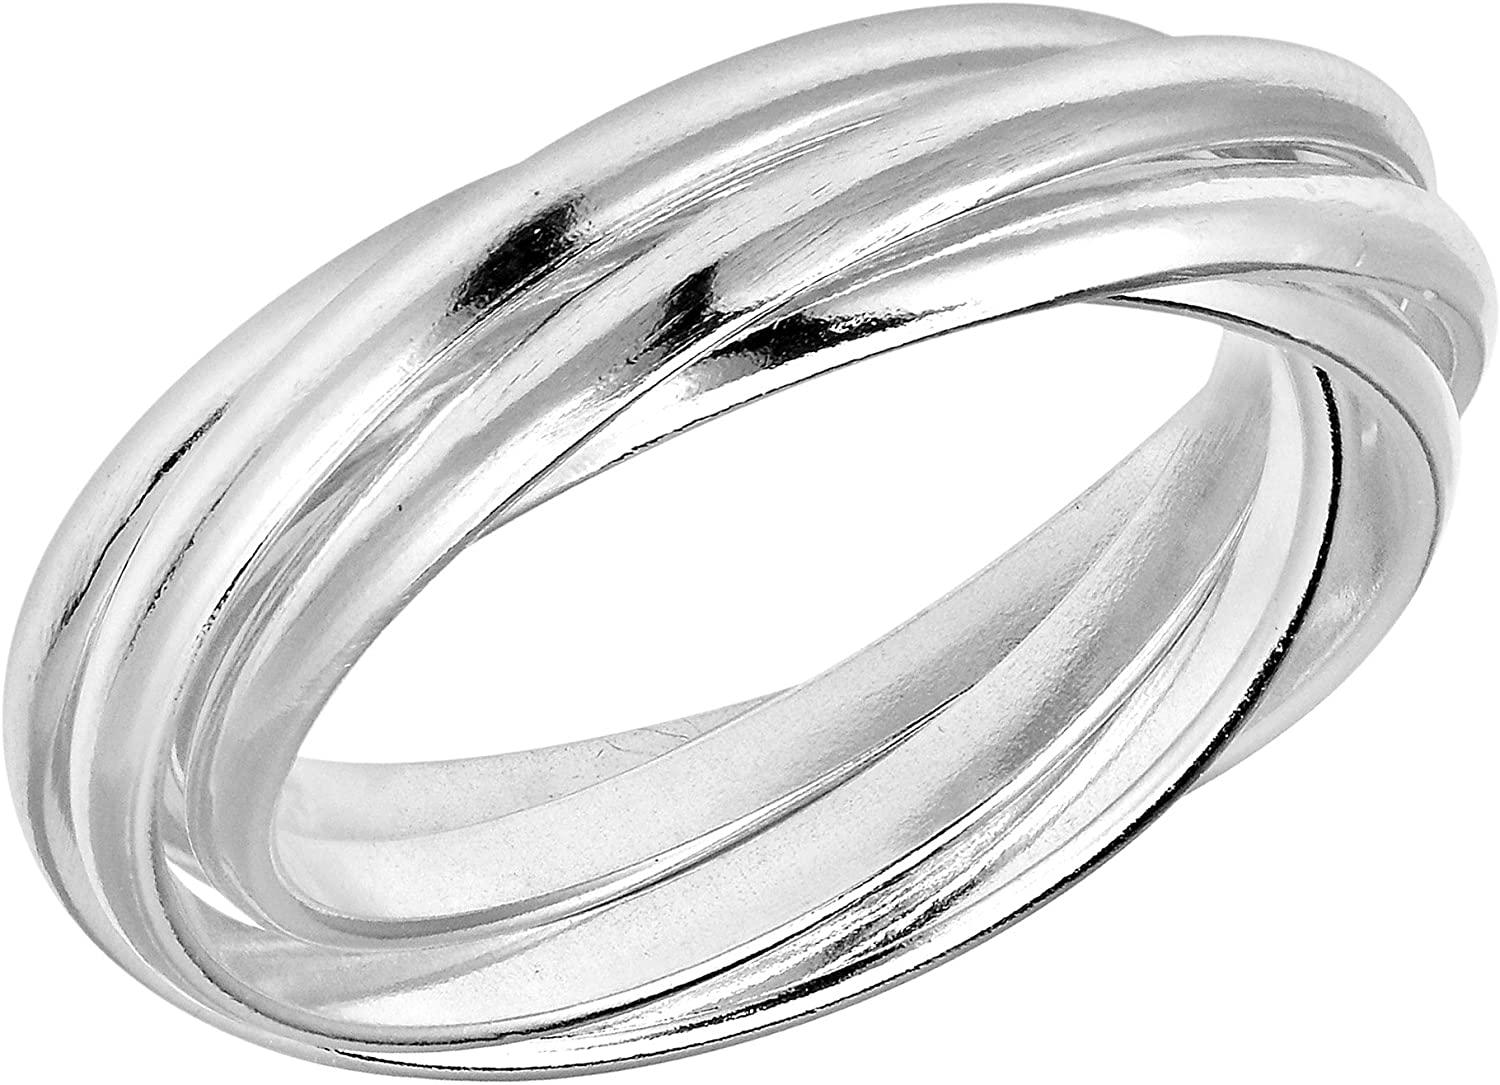 Sterling silver bracelet with  five inter-connected bangles